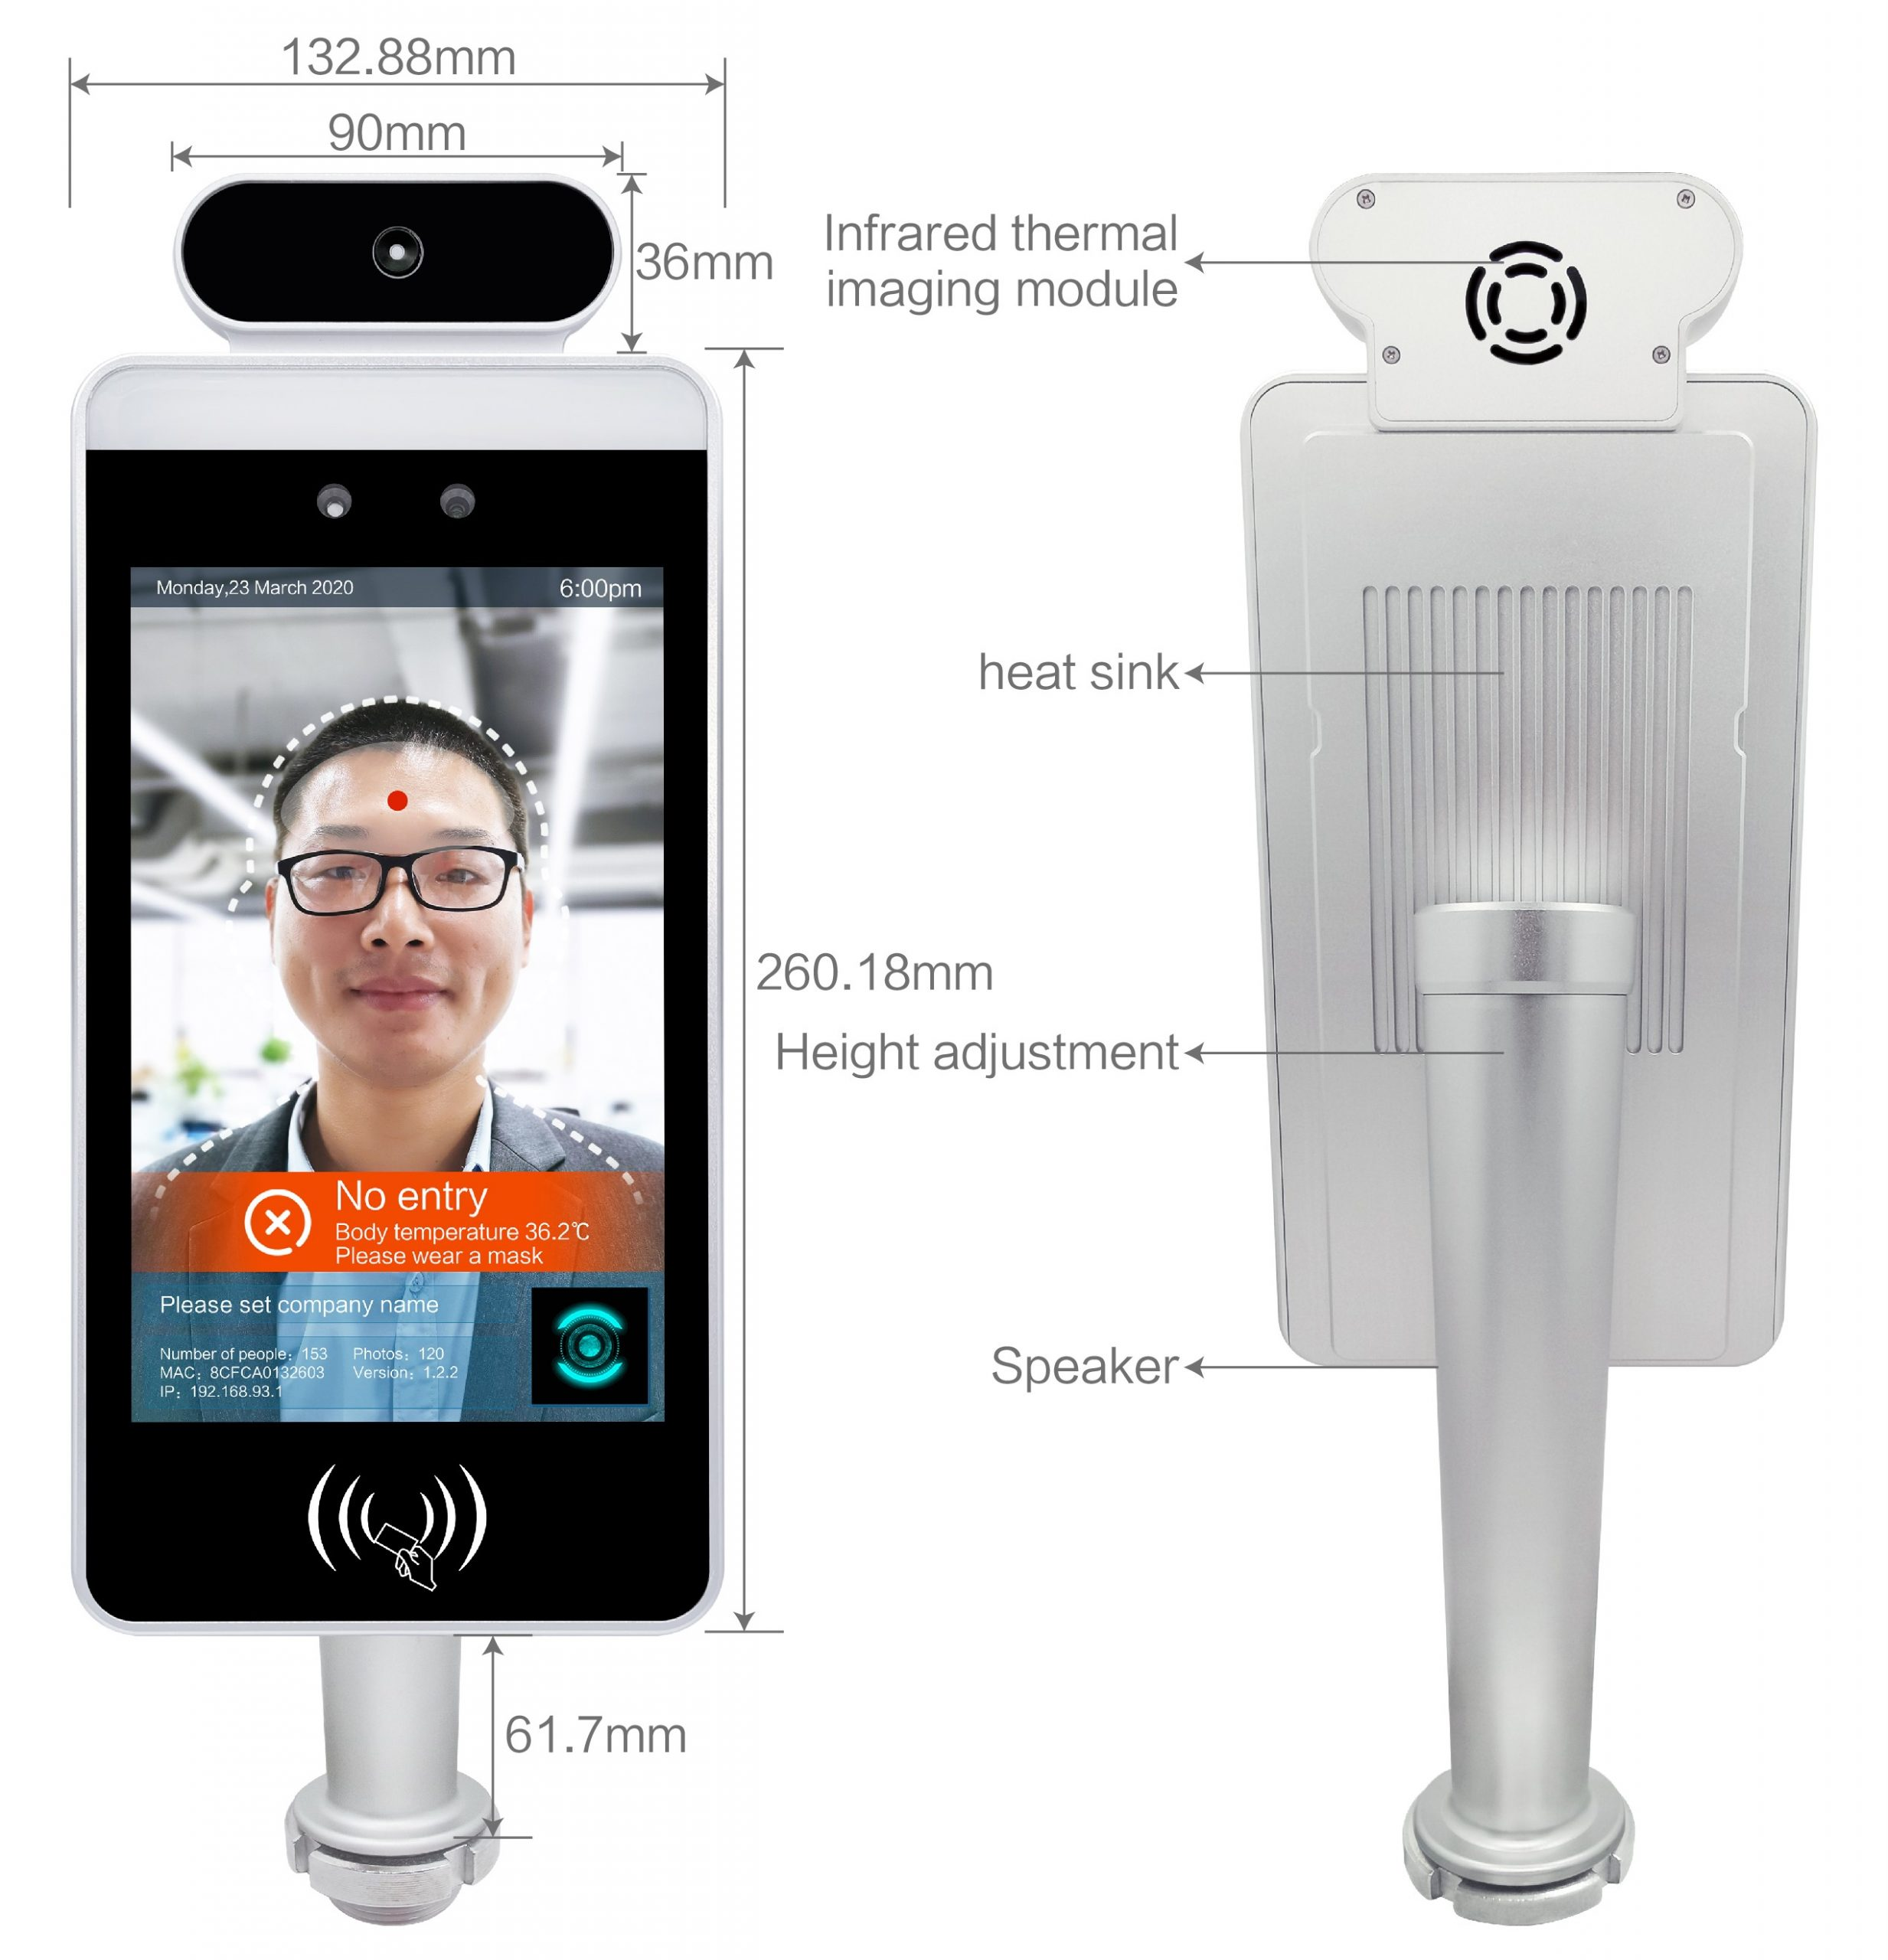 Facial Recognition Temperature Sensor - Appearance and Size